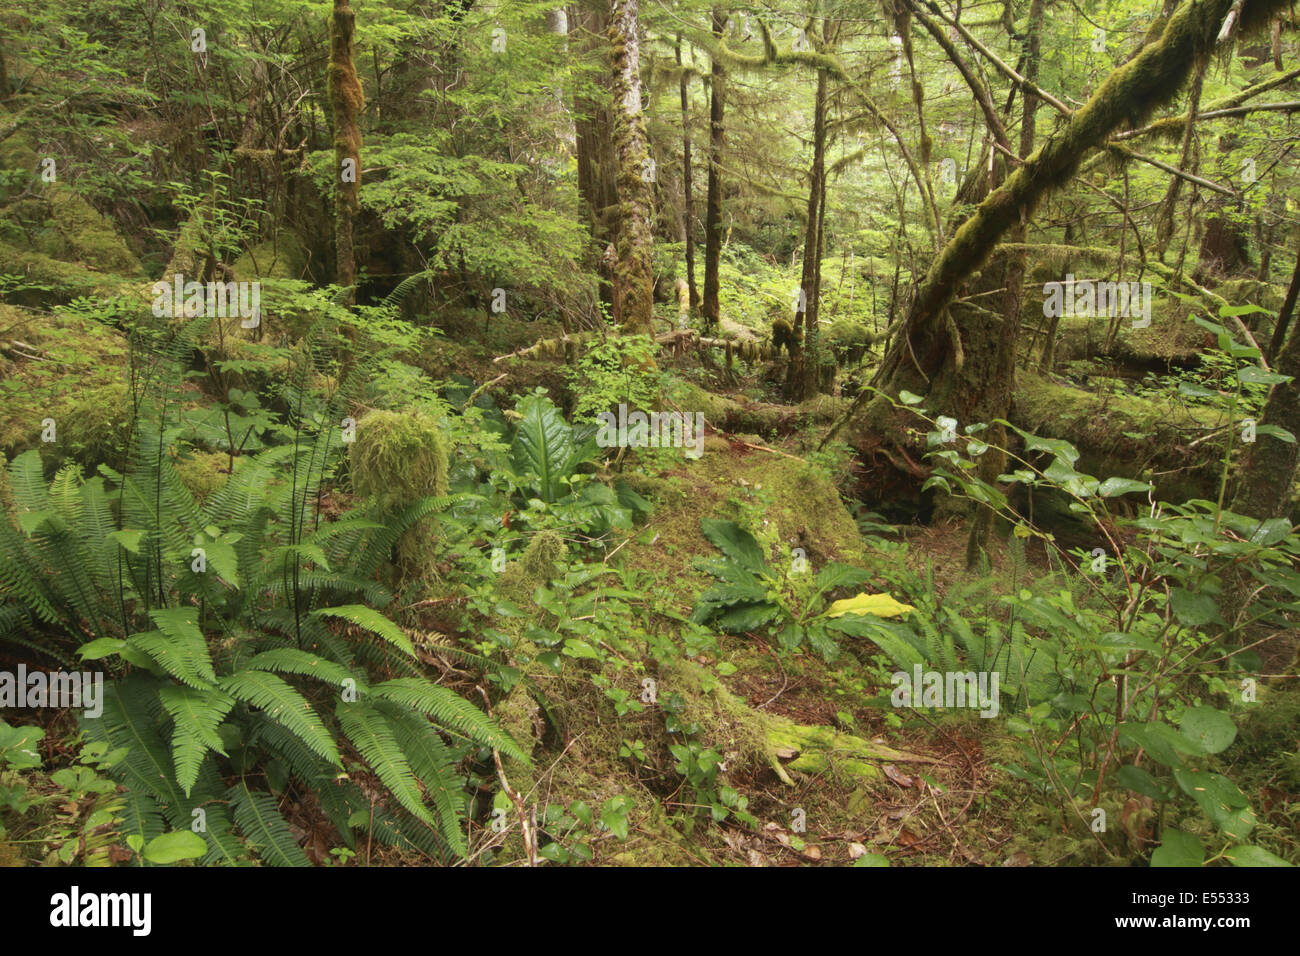 Ferns and moss covered trees in temperate coastal rainforest ...